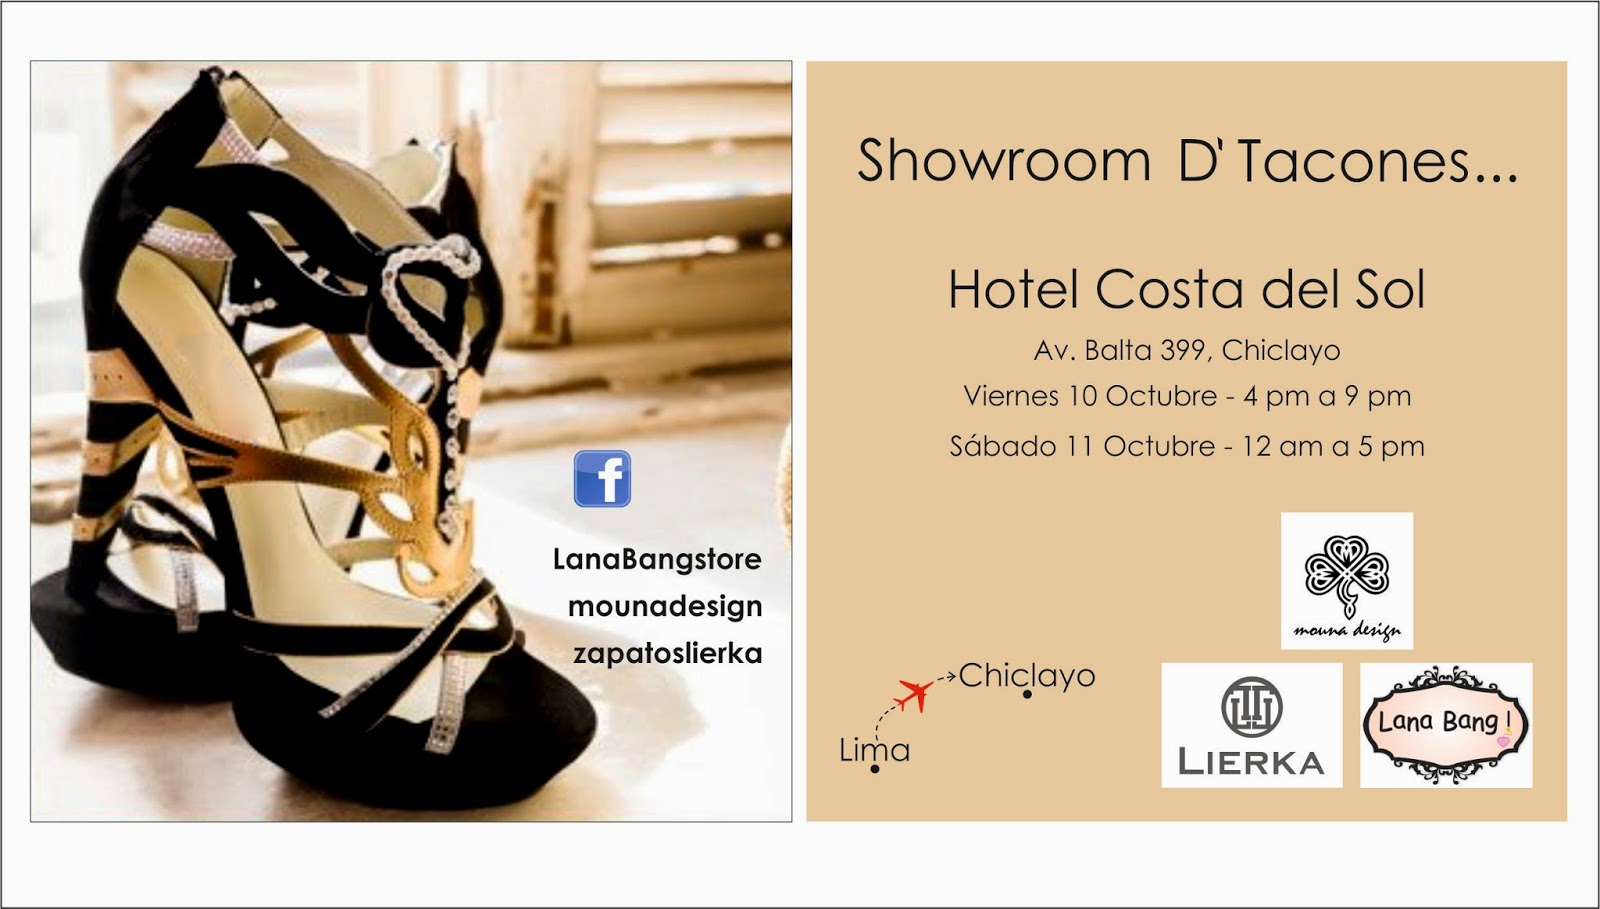 Showroom d 39 tacones chiclayo for Bathroom showrooms costa del sol